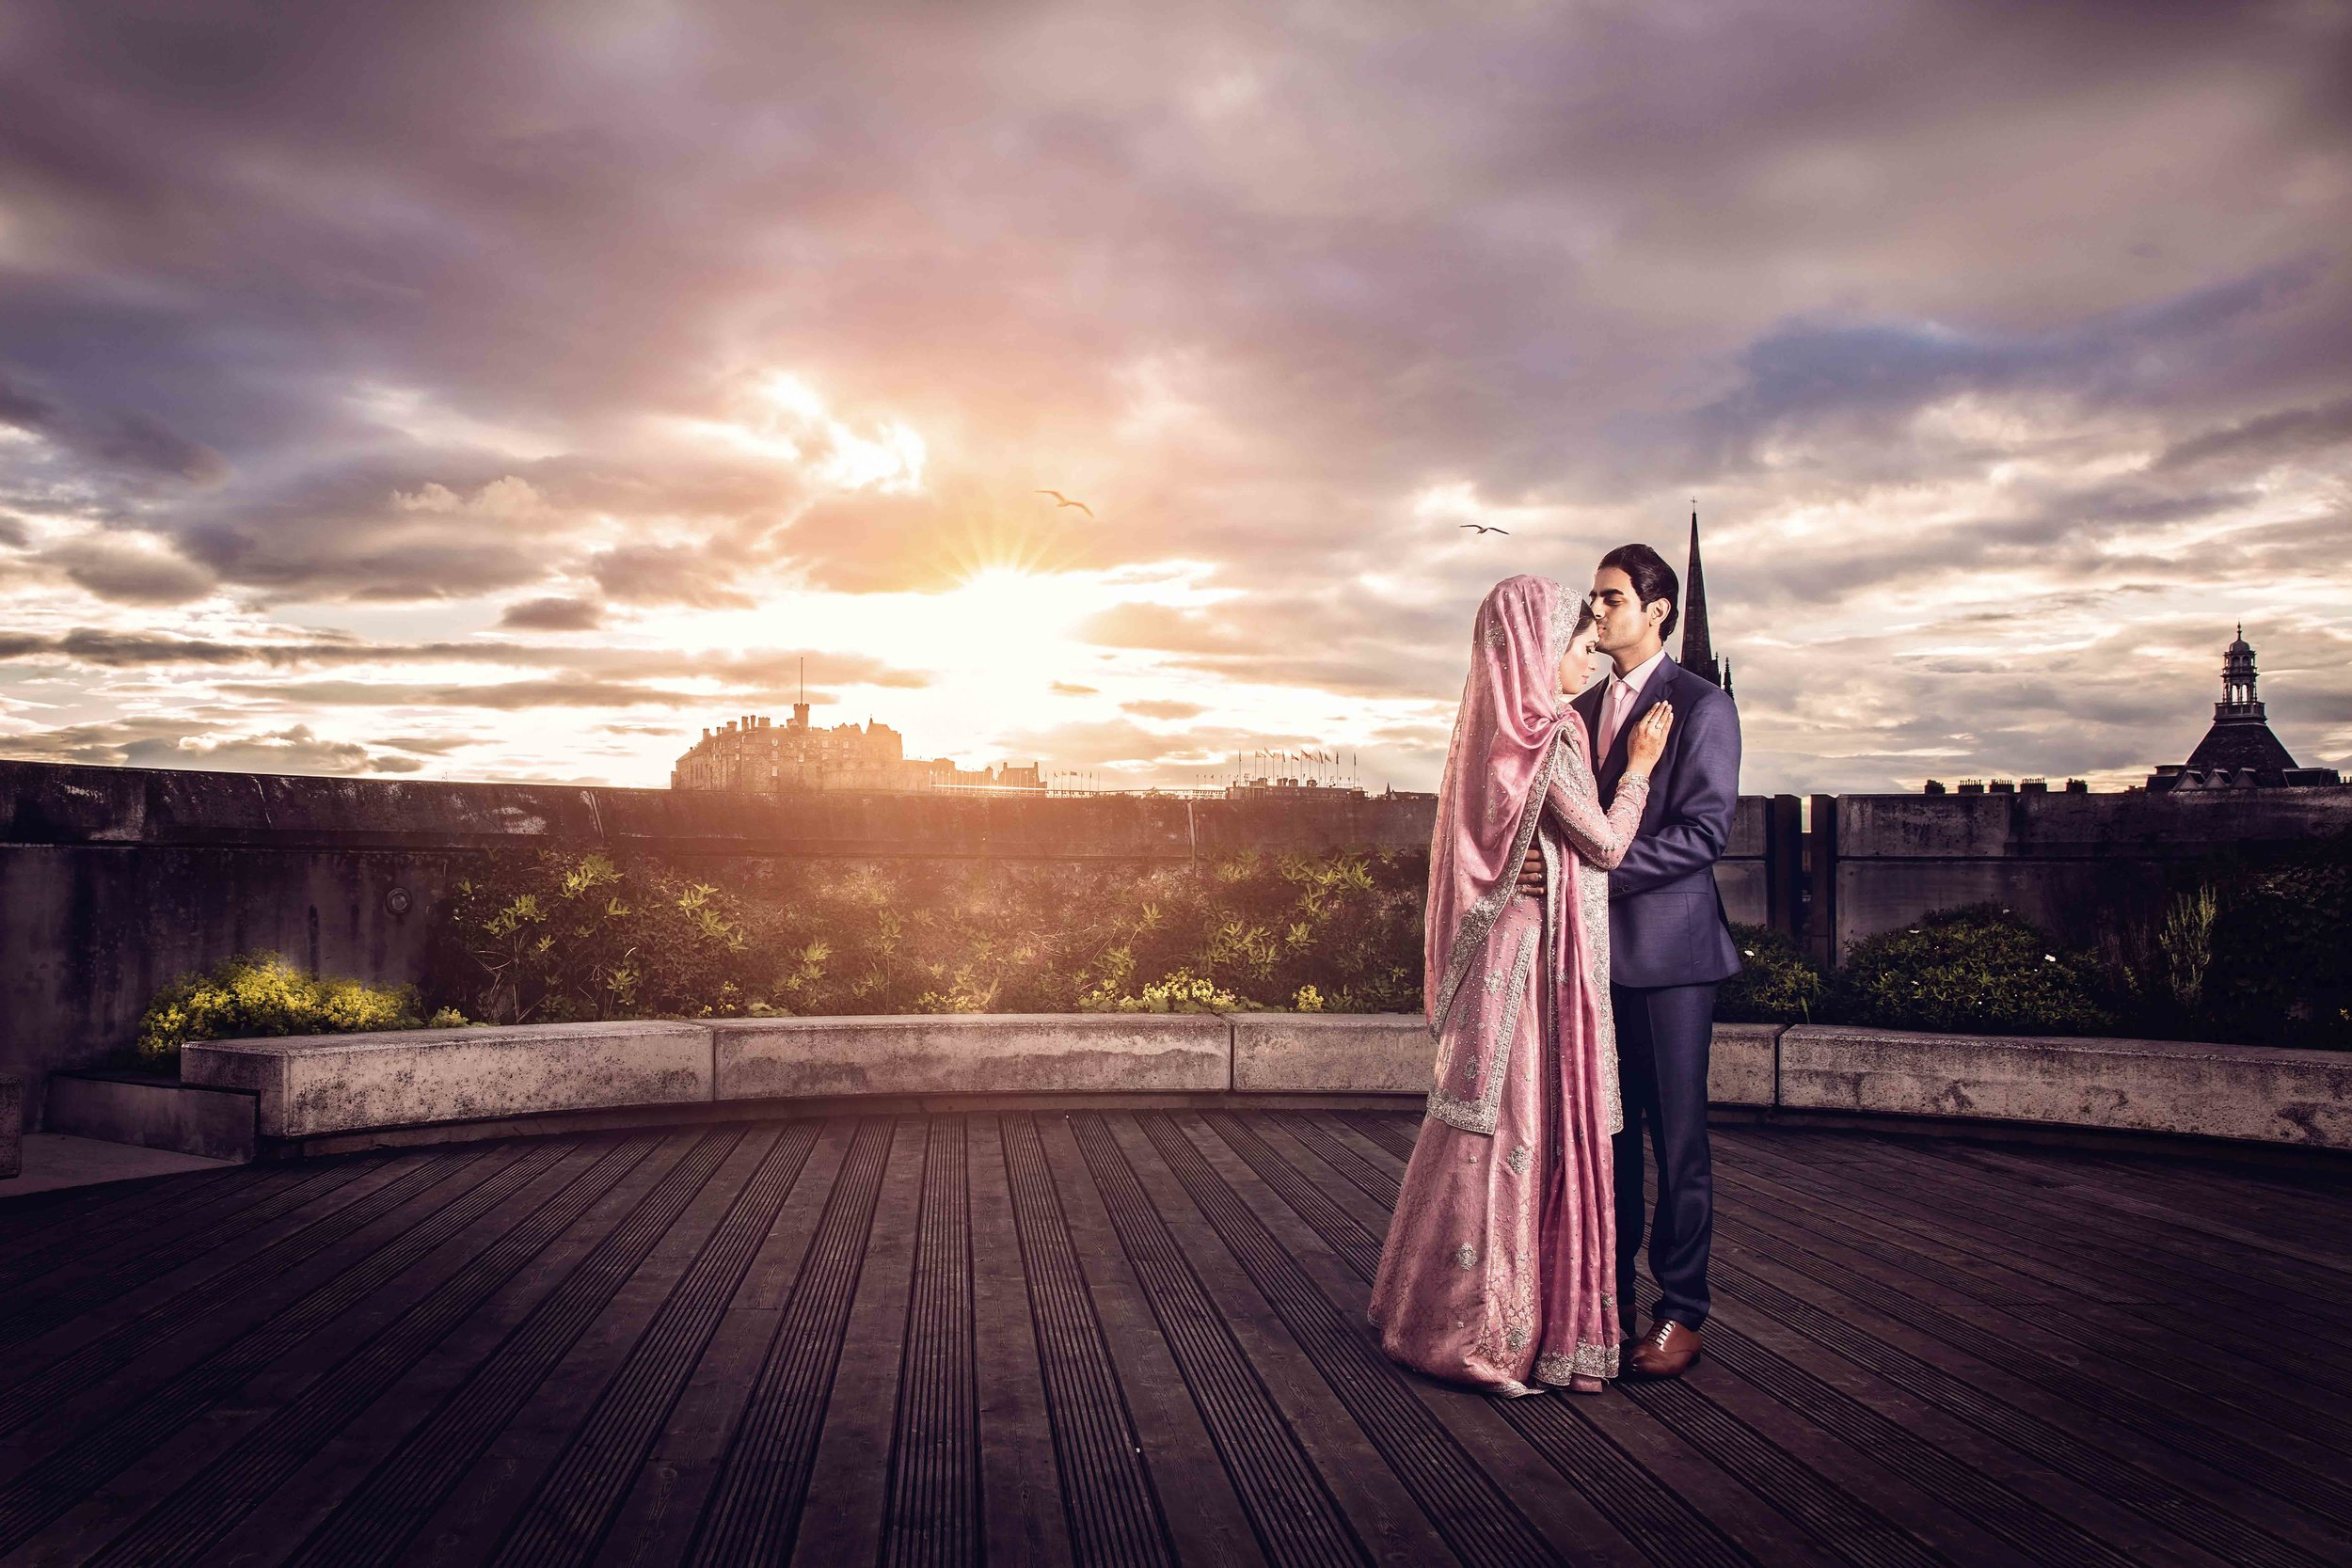 Asian Wedding Photographer Opu Sultan Photography Scotland Edinburgh Glasgow London Manchester Liverpool Birmingham Wedding Photos Salman & Maha Blog Photos-26.jpg